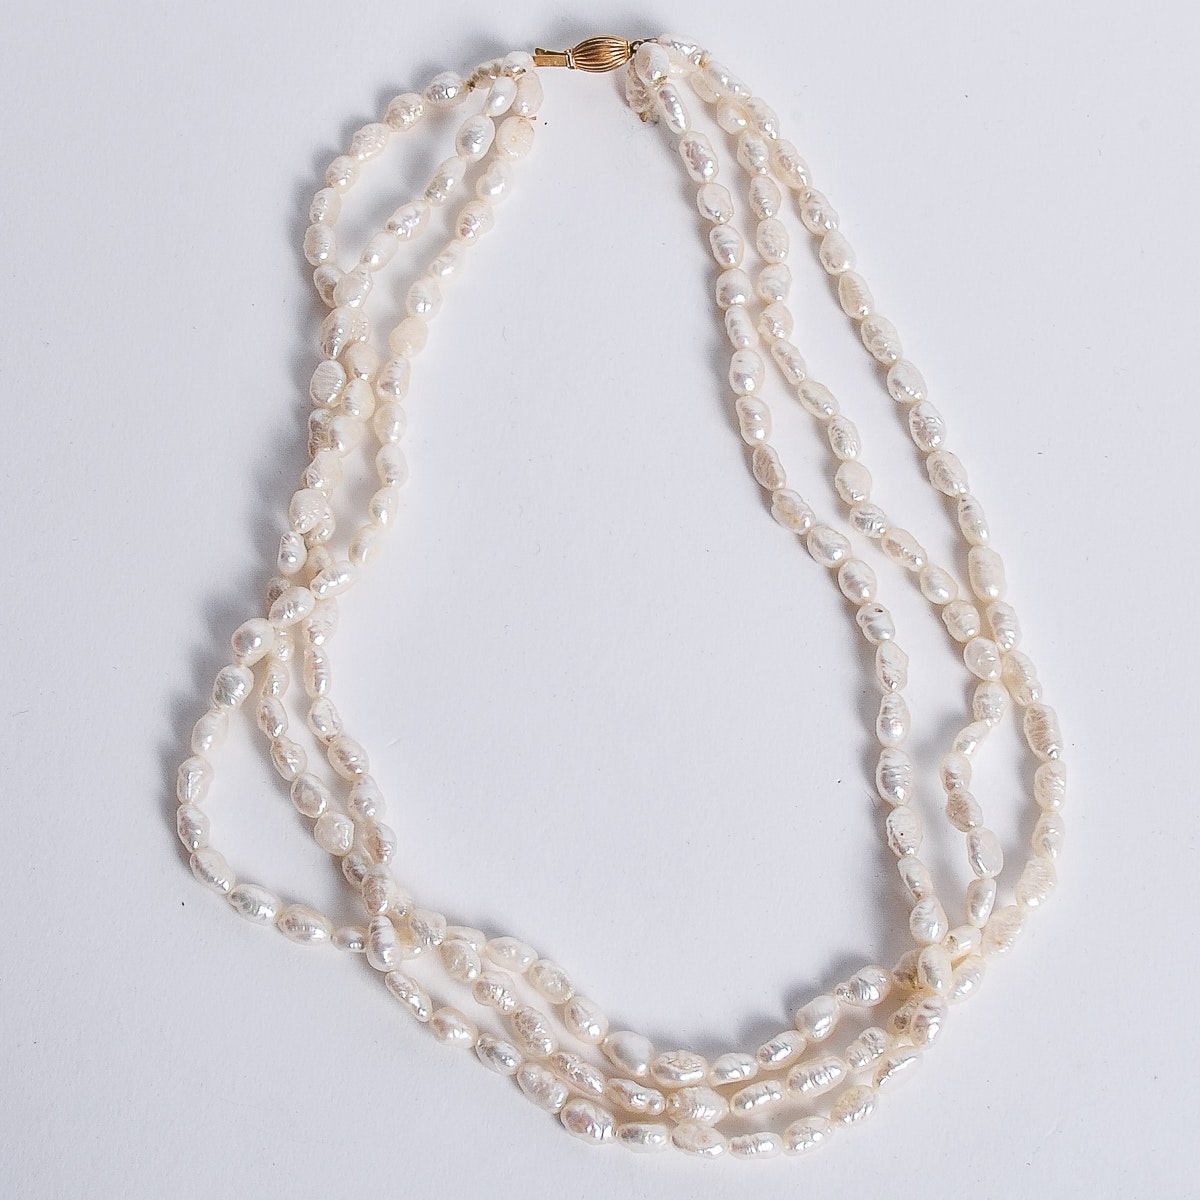 Vintage 14K Yellow Gold and Multi-Strand Freshwater Pearl Necklace